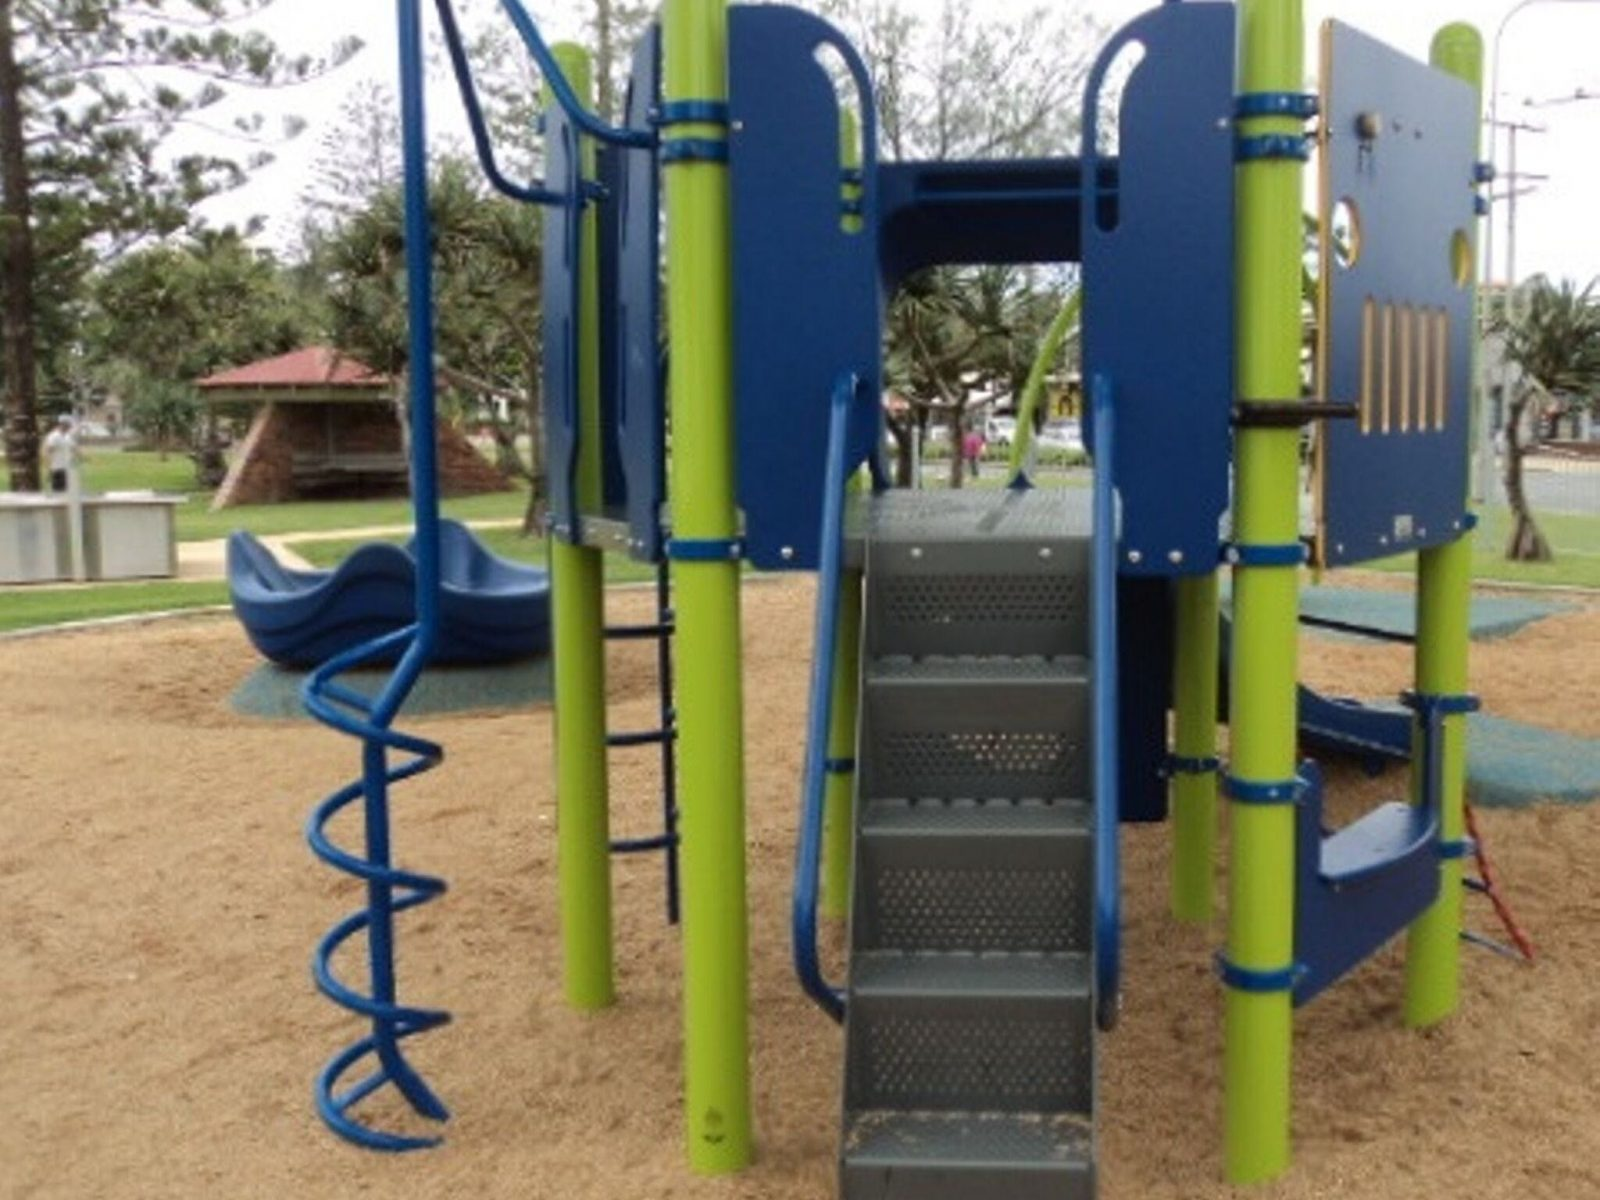 Childrens play equipment at Roughton Park